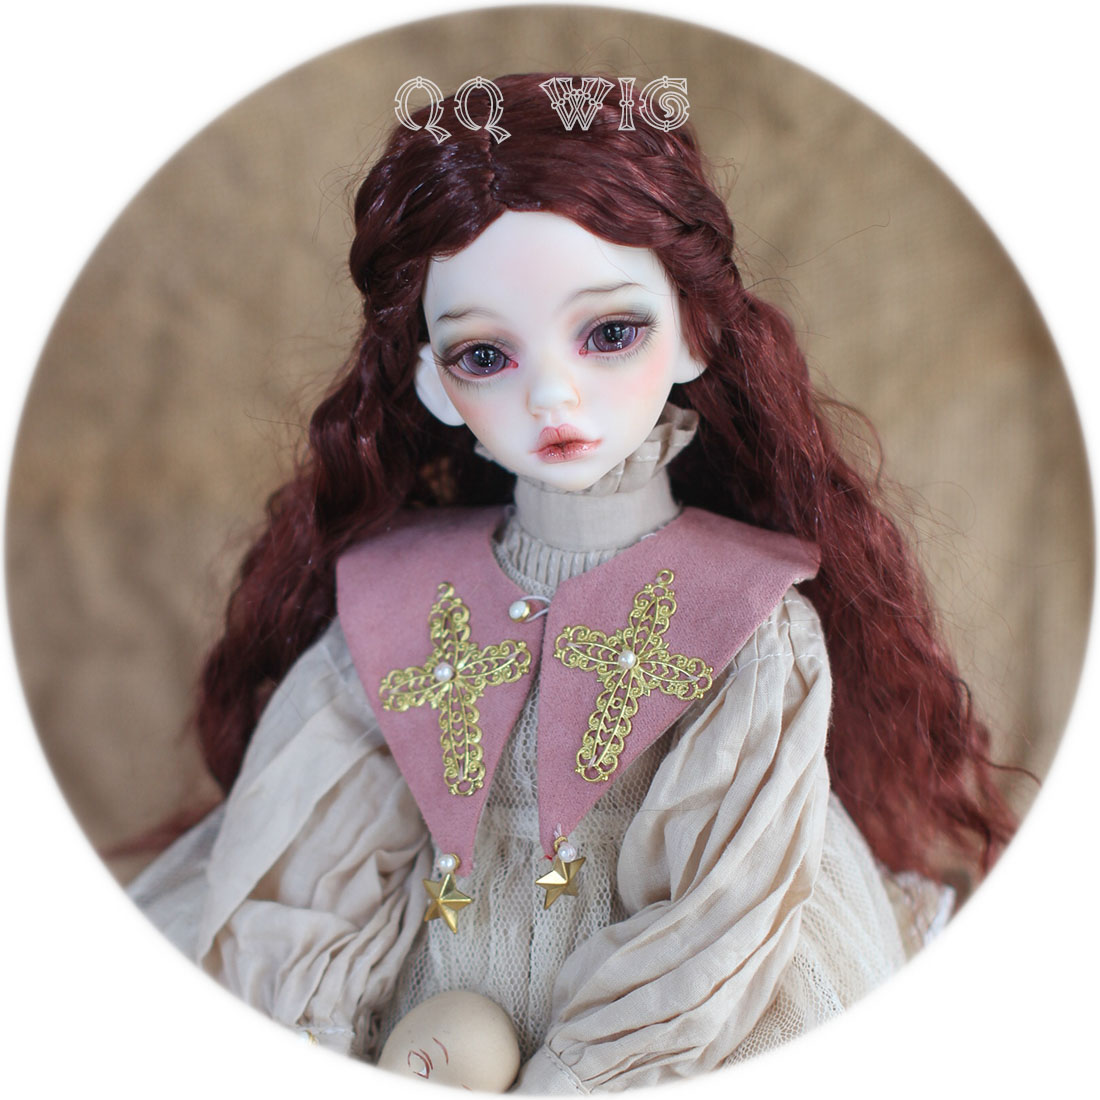 Free Shipping 1/3 1/4 1/6 Bjd Wig Mohair Msd Sd Yosd Fashion Wine Red Wavy Hair Wig free shipping newest 1 3 1 4 1 6 bjd wig high temperature long wire bjd wig msd sd yosd for bjd doll